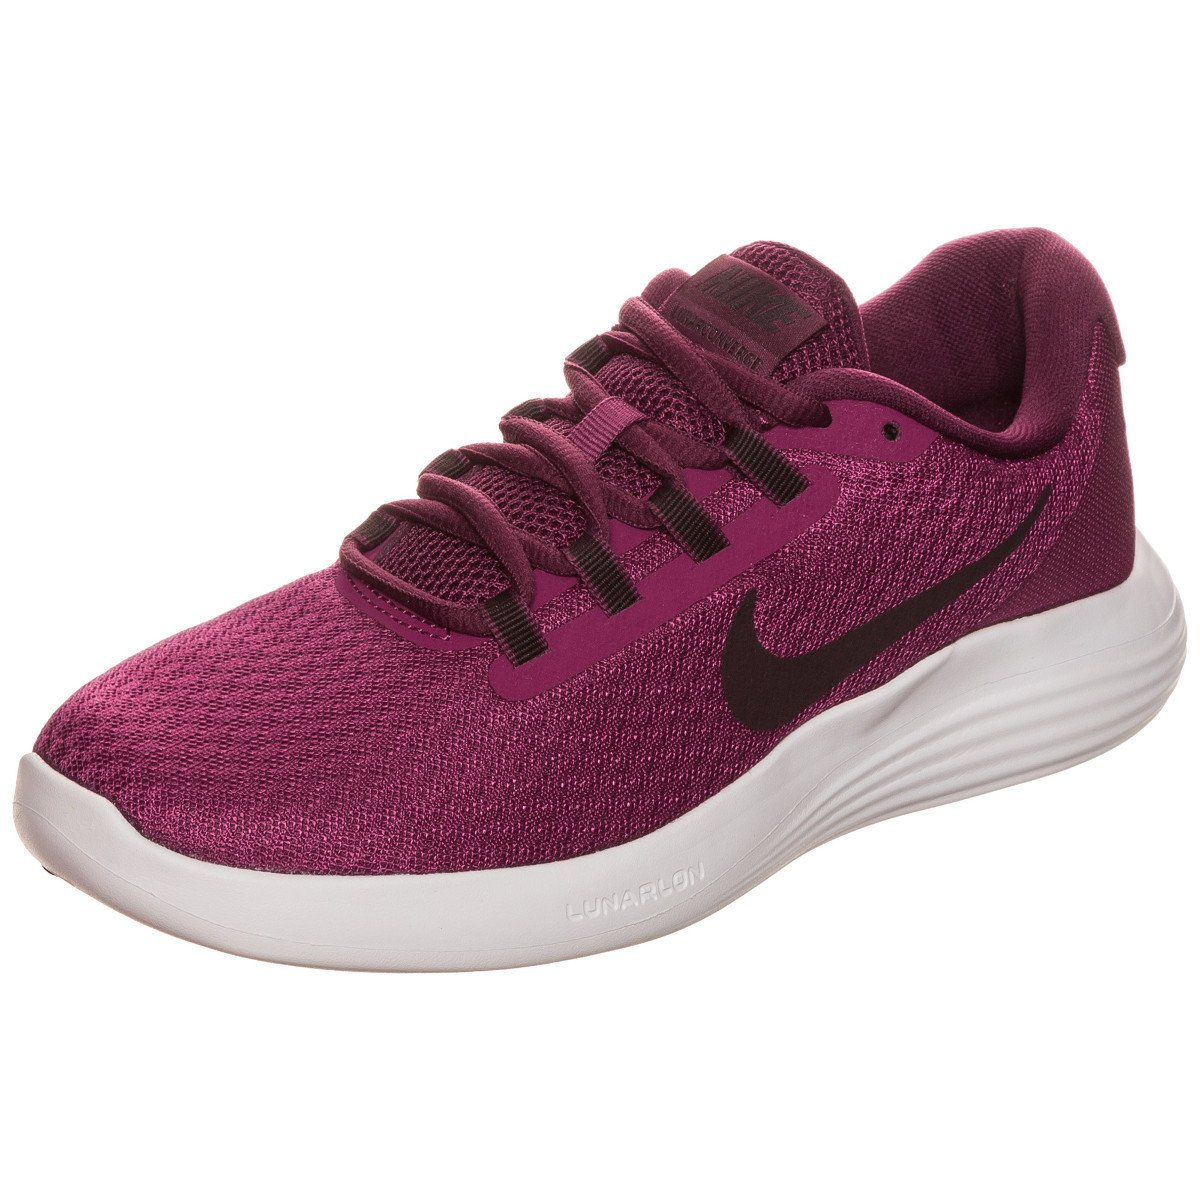 Nike  Damen Turnschuhe Tea Berry Port Wine-Bordeaux 42 5 EU